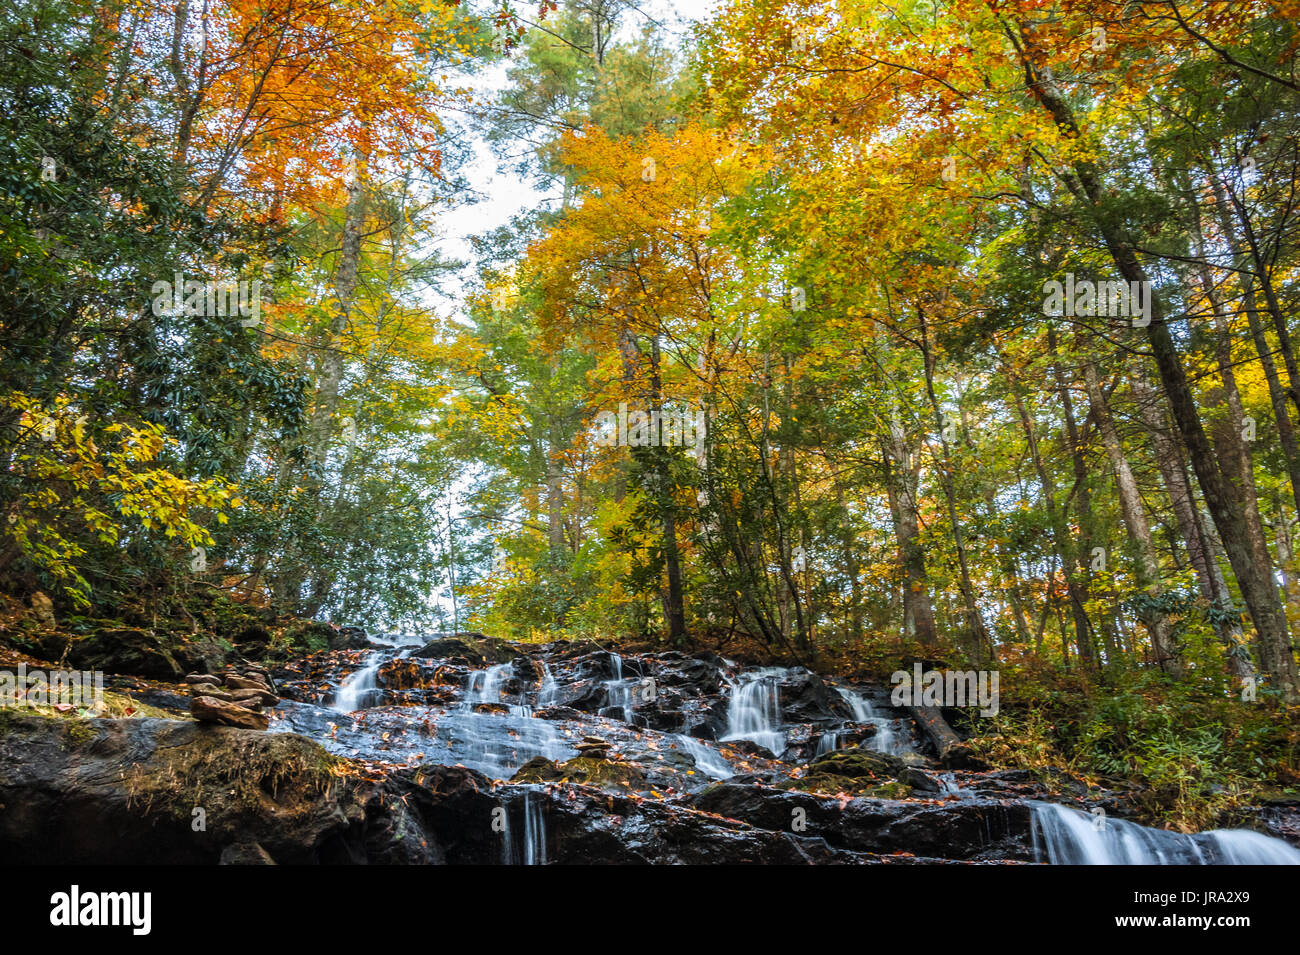 Colorful Autumn trees over beautiful Trahlyta Falls at Vogel State Park in the Blue Ridge Mountains of North Georgia. (USA) - Stock Image